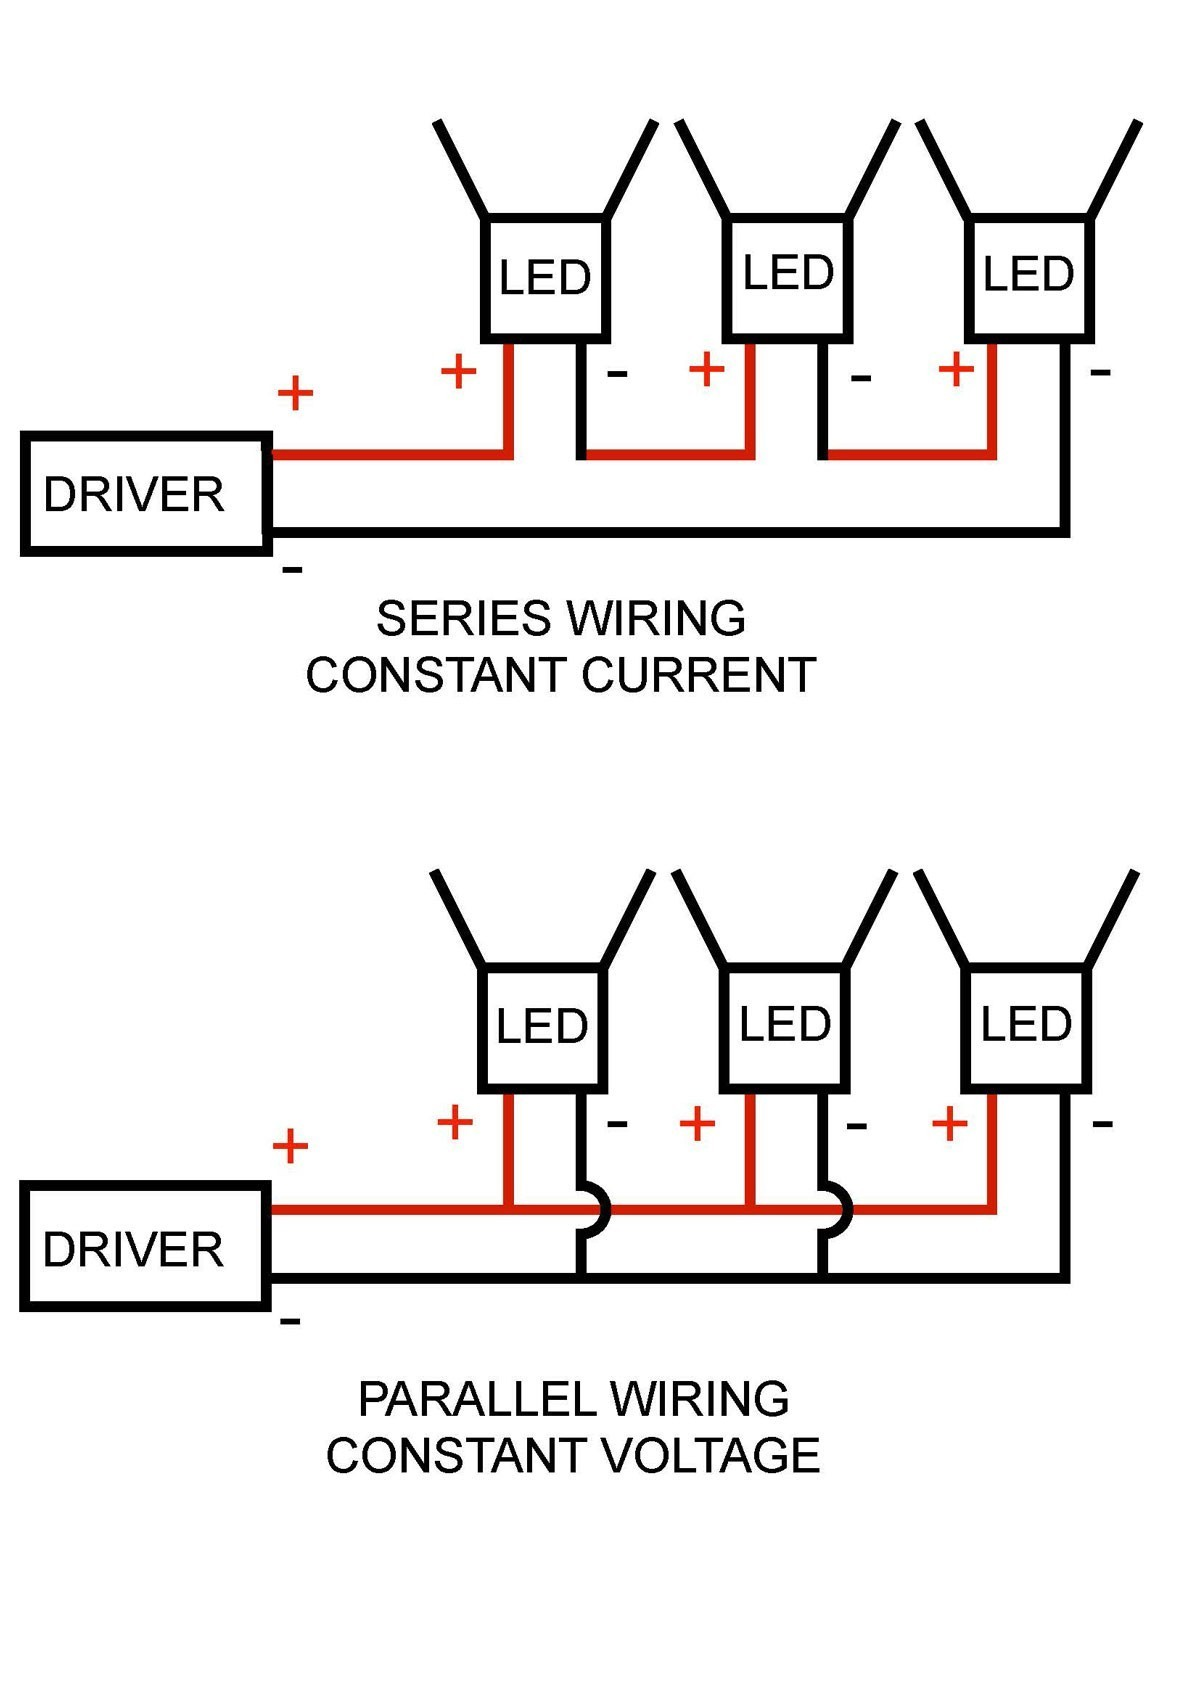 wiring recessed lights in parallel diagram unique wiring diagrams for 6 recessed lighting in series fresh wiring of wiring recessed lights in parallel diagram?resize\=806%2C1140\&ssl\=1 wiring recessed lights in parallel diagram electrical wiring diagrams